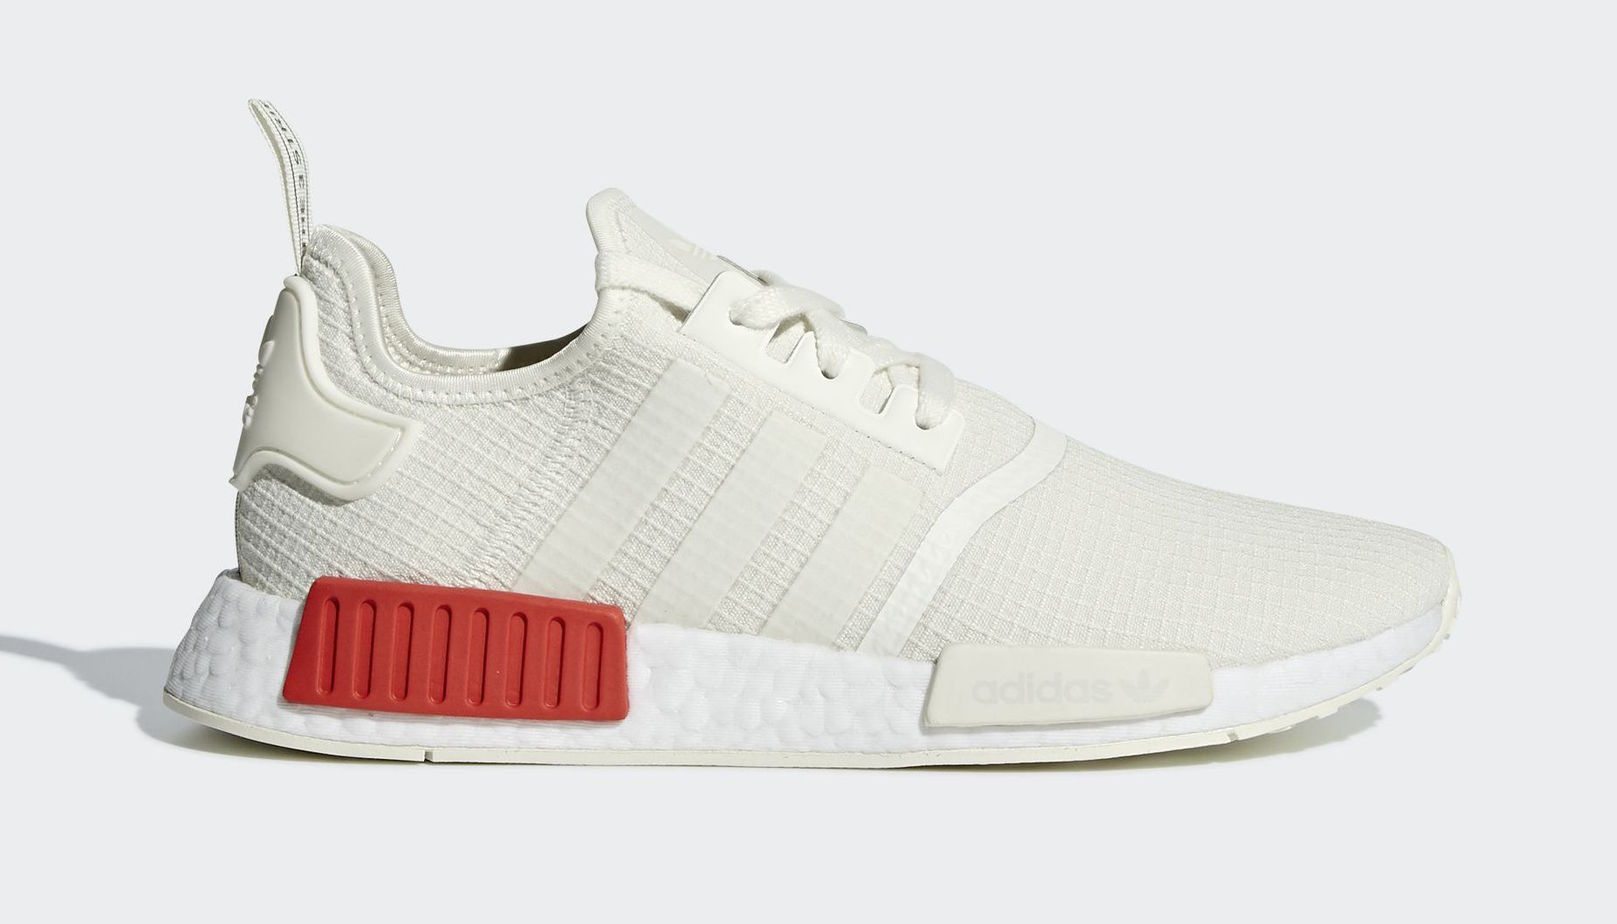 4d5493786 The adidas NMD R1 has seen countless variations and colorways since it s  debut back in 2015. Now